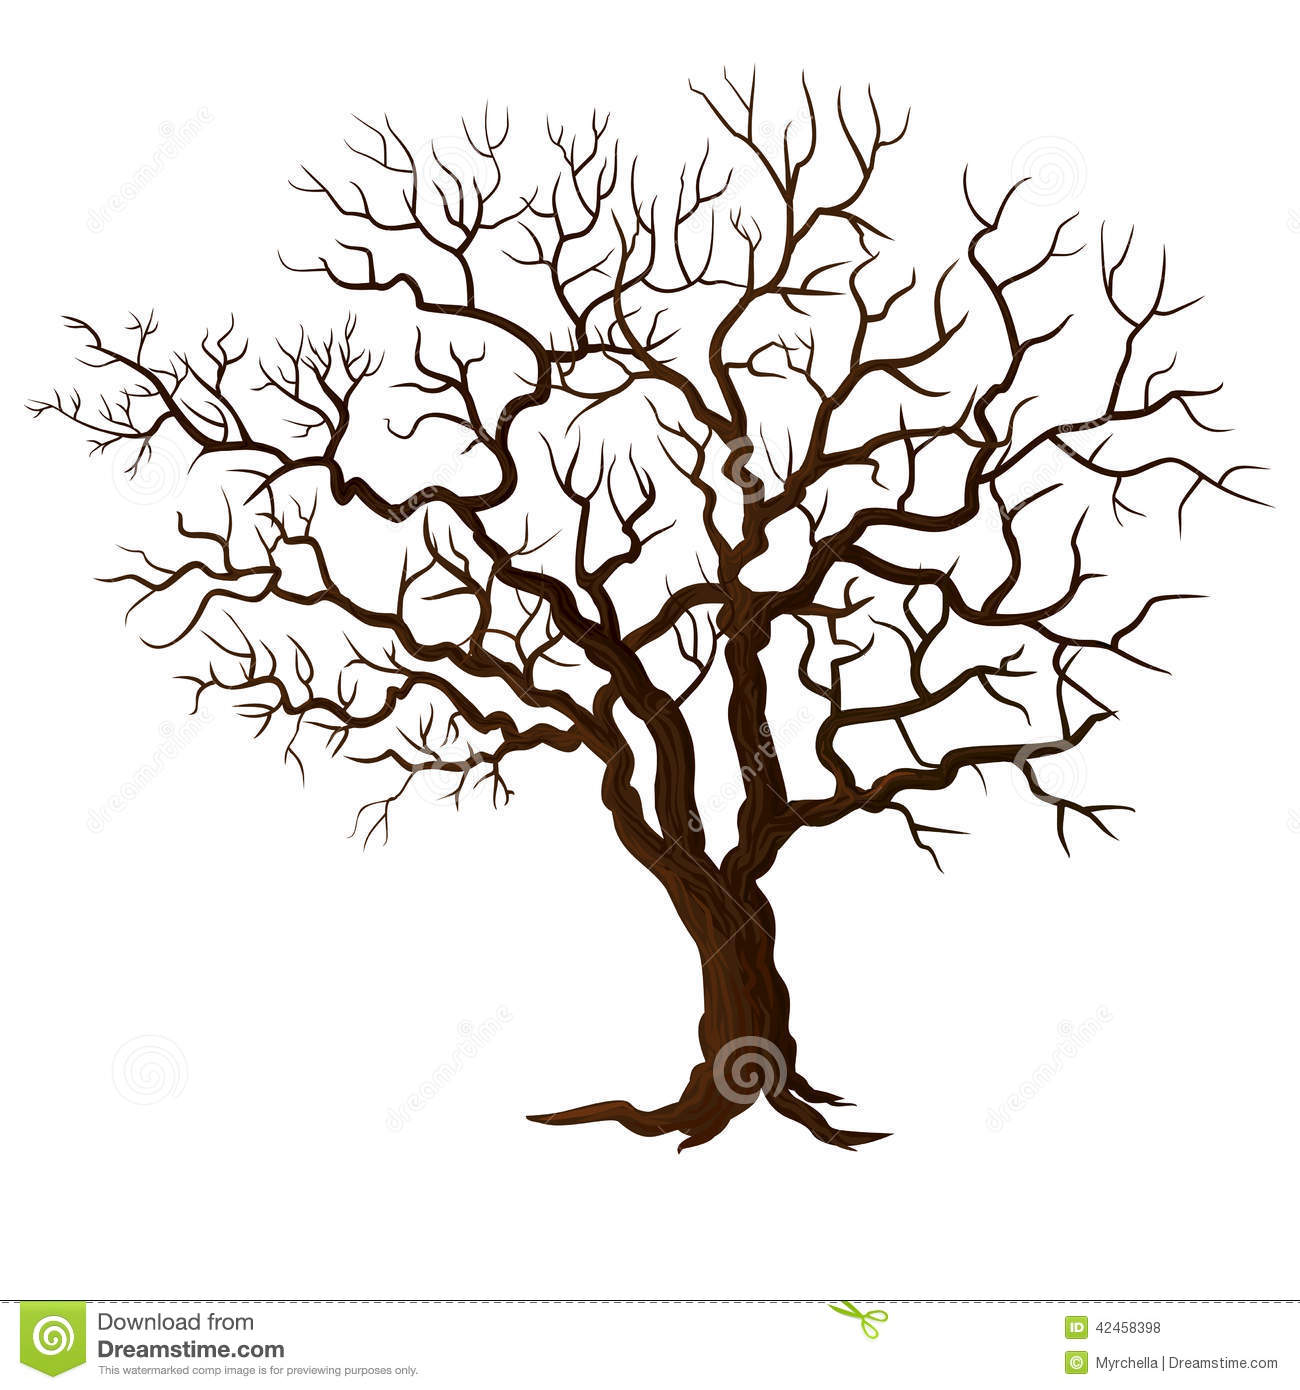 Hochzeit Leinwand Baum Tree Without Leaves Isolated On White Stock Vector